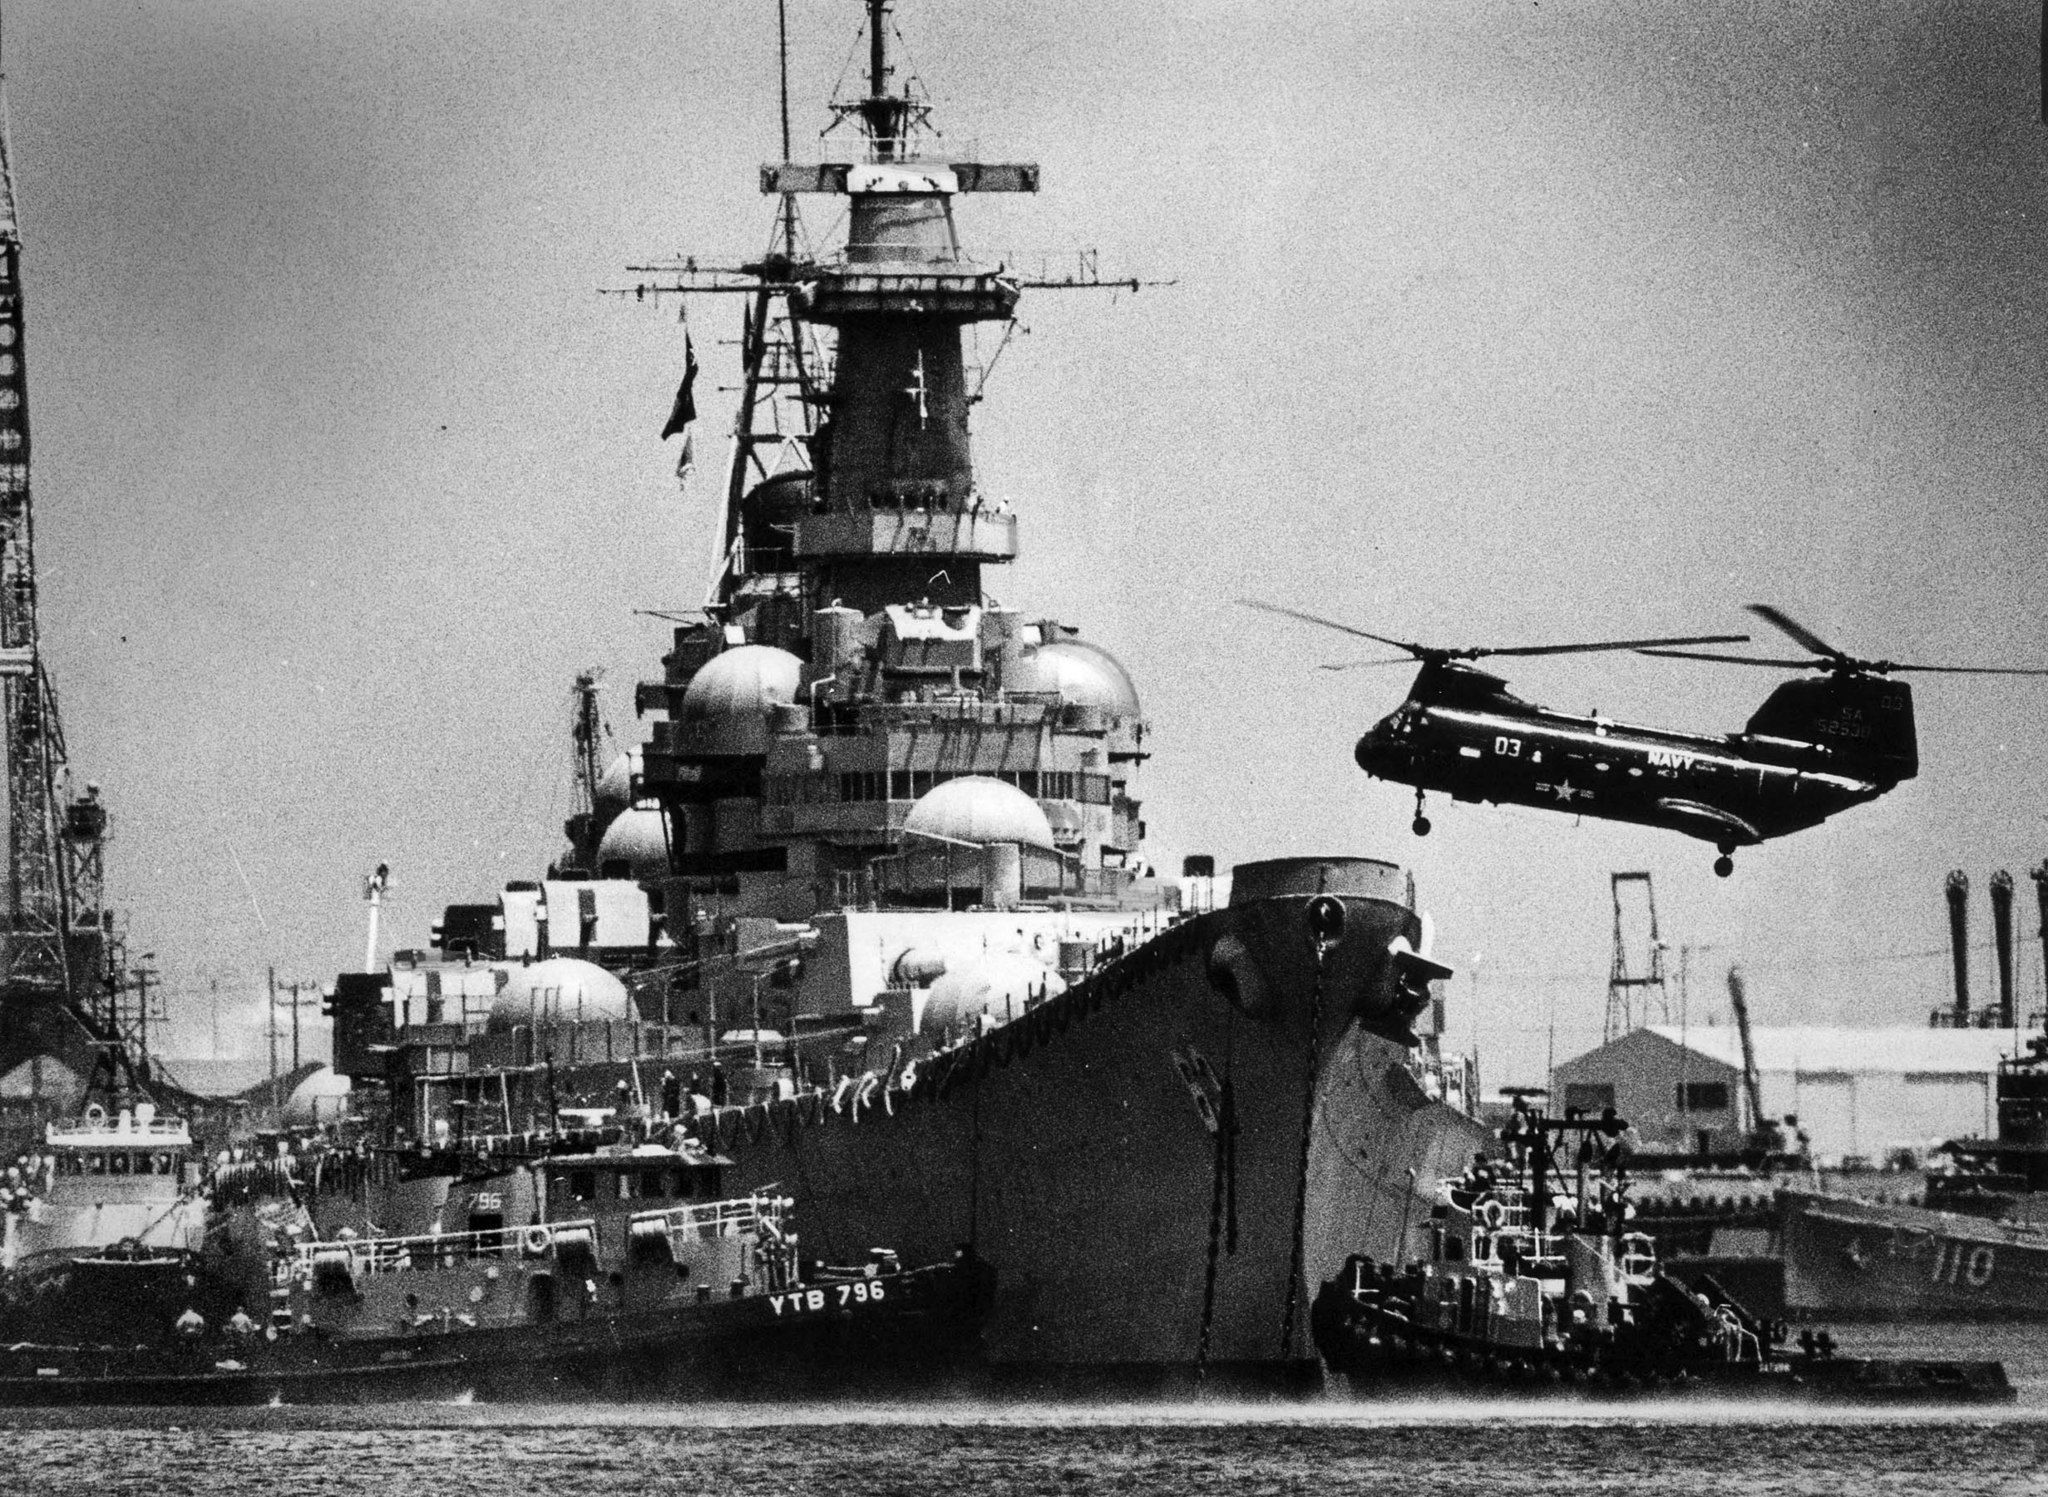 From the Archives: The battleship Missouri returns to Long